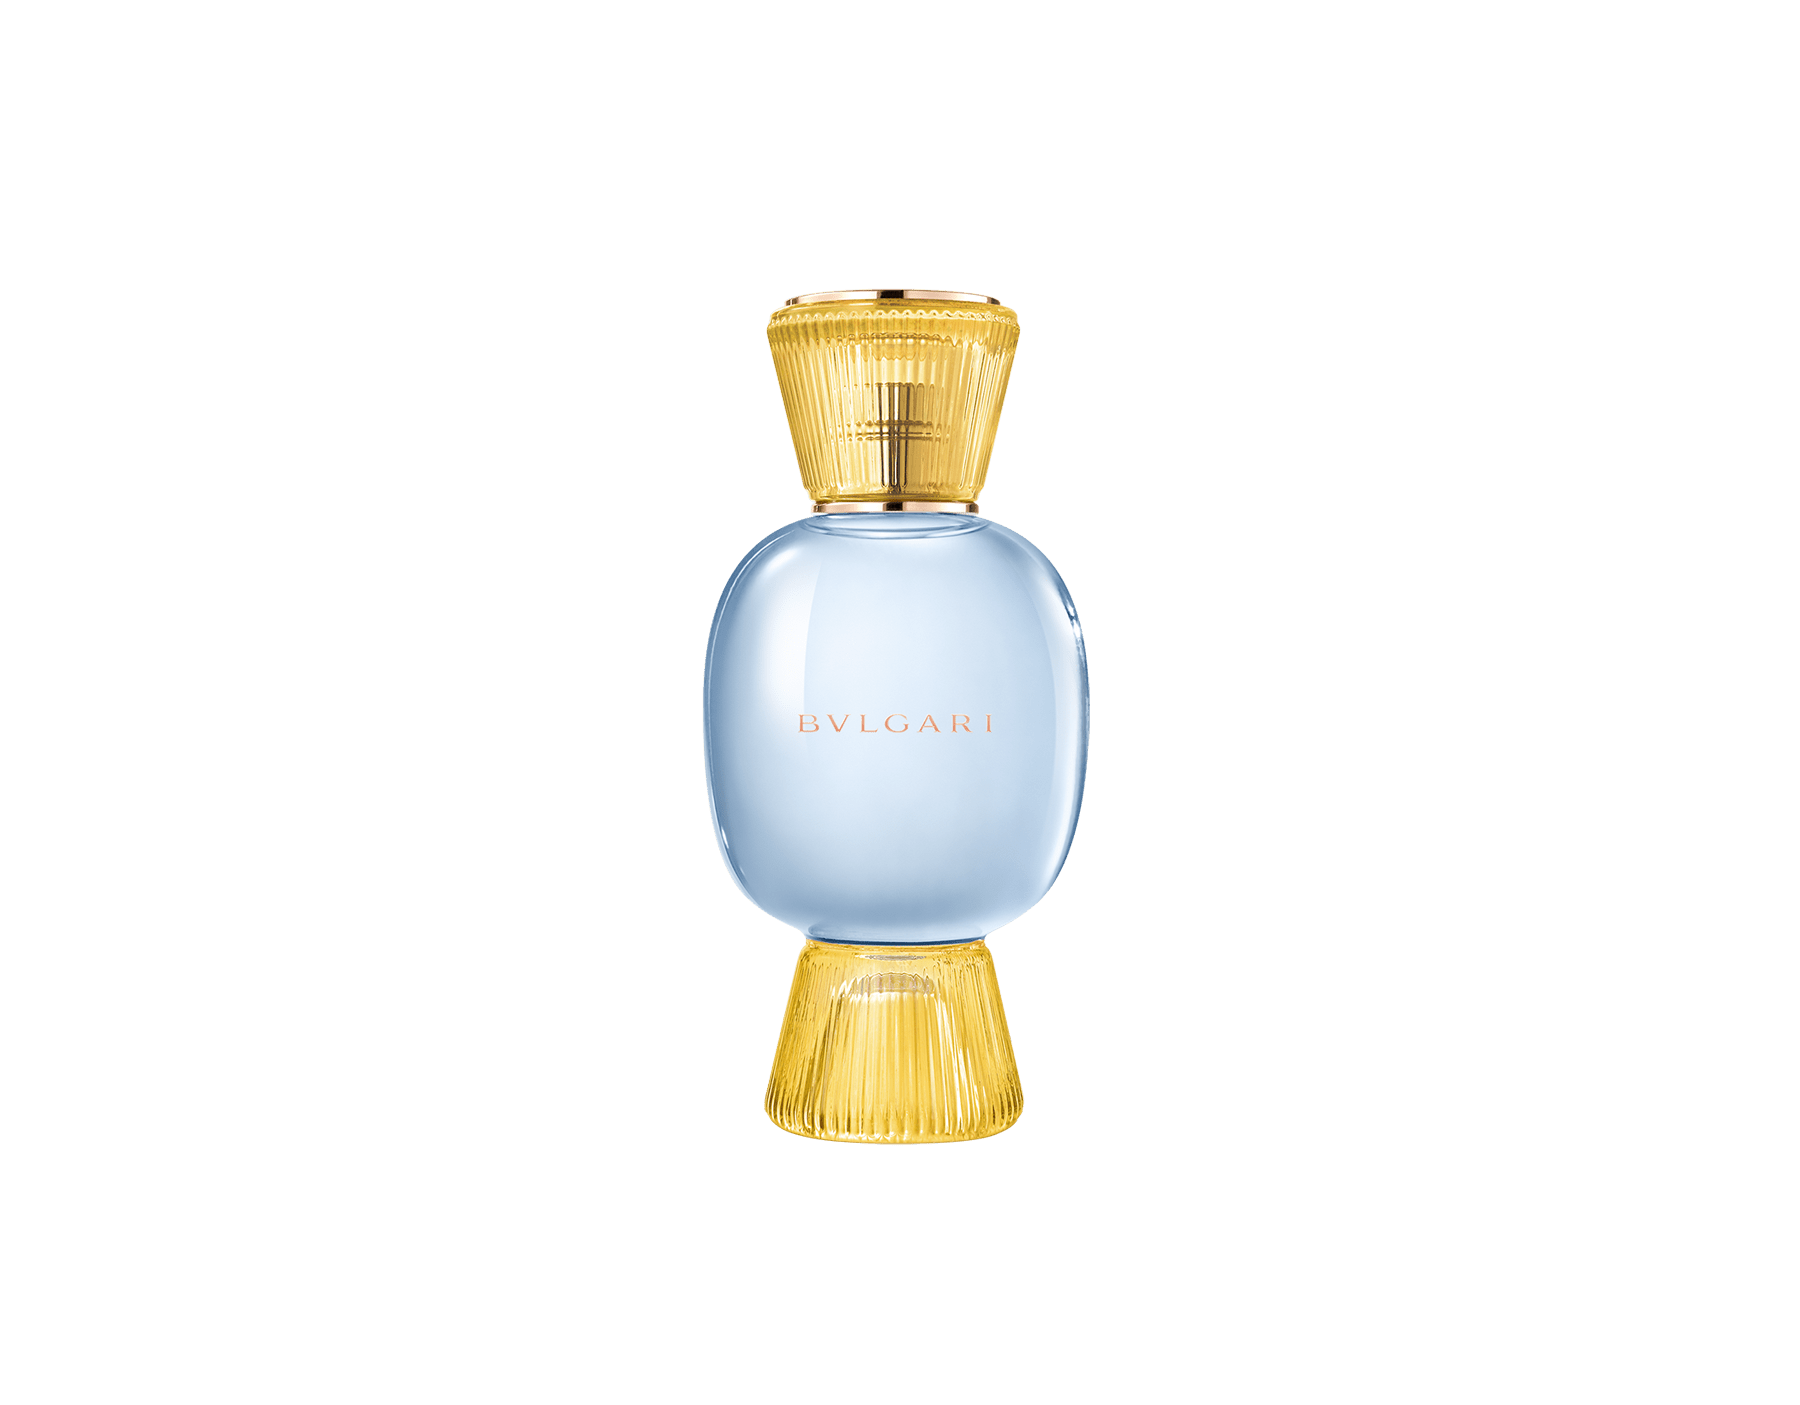 An exclusive perfume set, as bold and unique as you. The sparkling citrus Riva Solare Allegra Eau de Parfum blends with the warm touch of the Magnifying Musk Essence, creating an irresistible personalised women's perfume. Perfume-Set-Riva-Solare-Eau-de-Parfum-and-Musk-Magnifying image 2